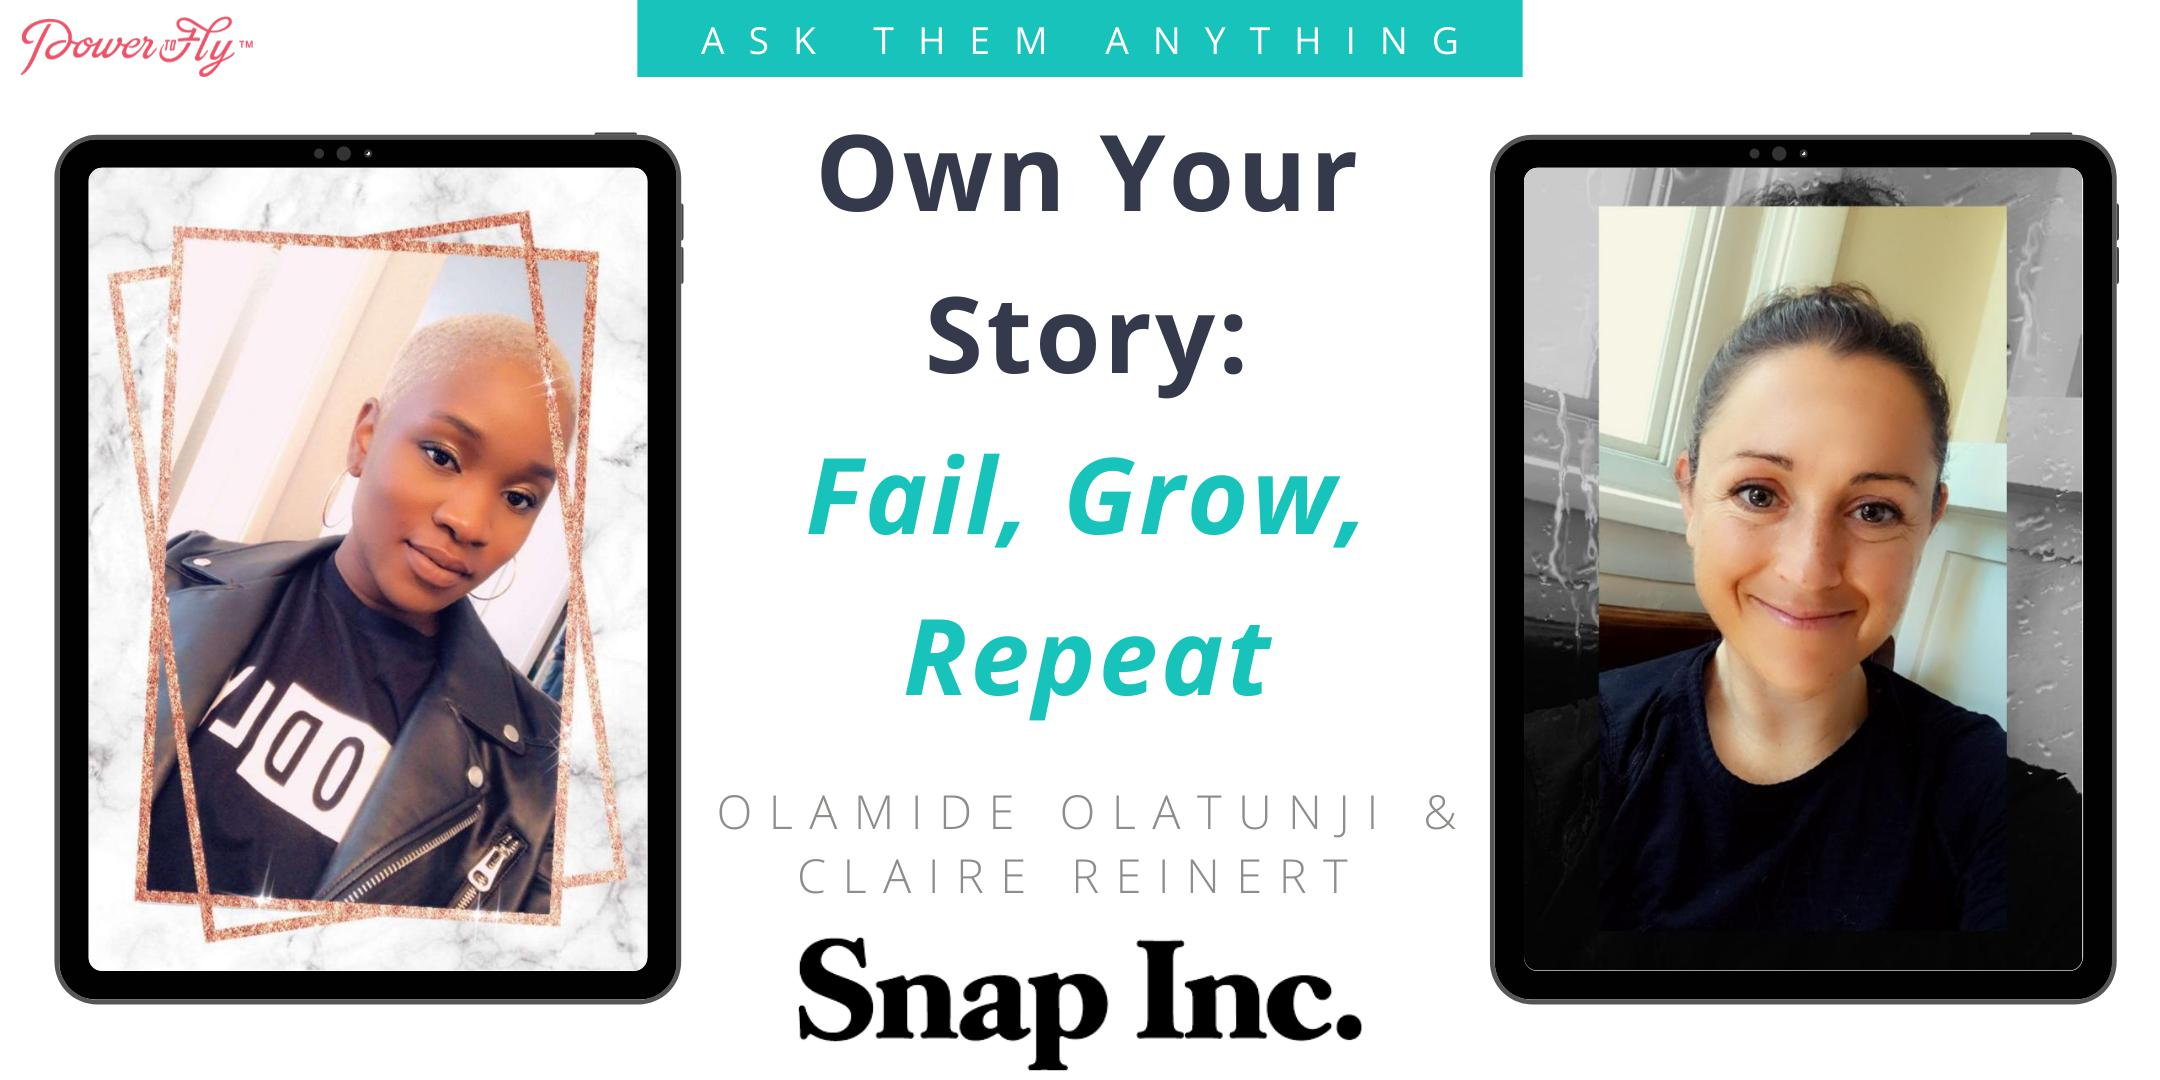 Own Your Story: Fail, Grow, Repeat